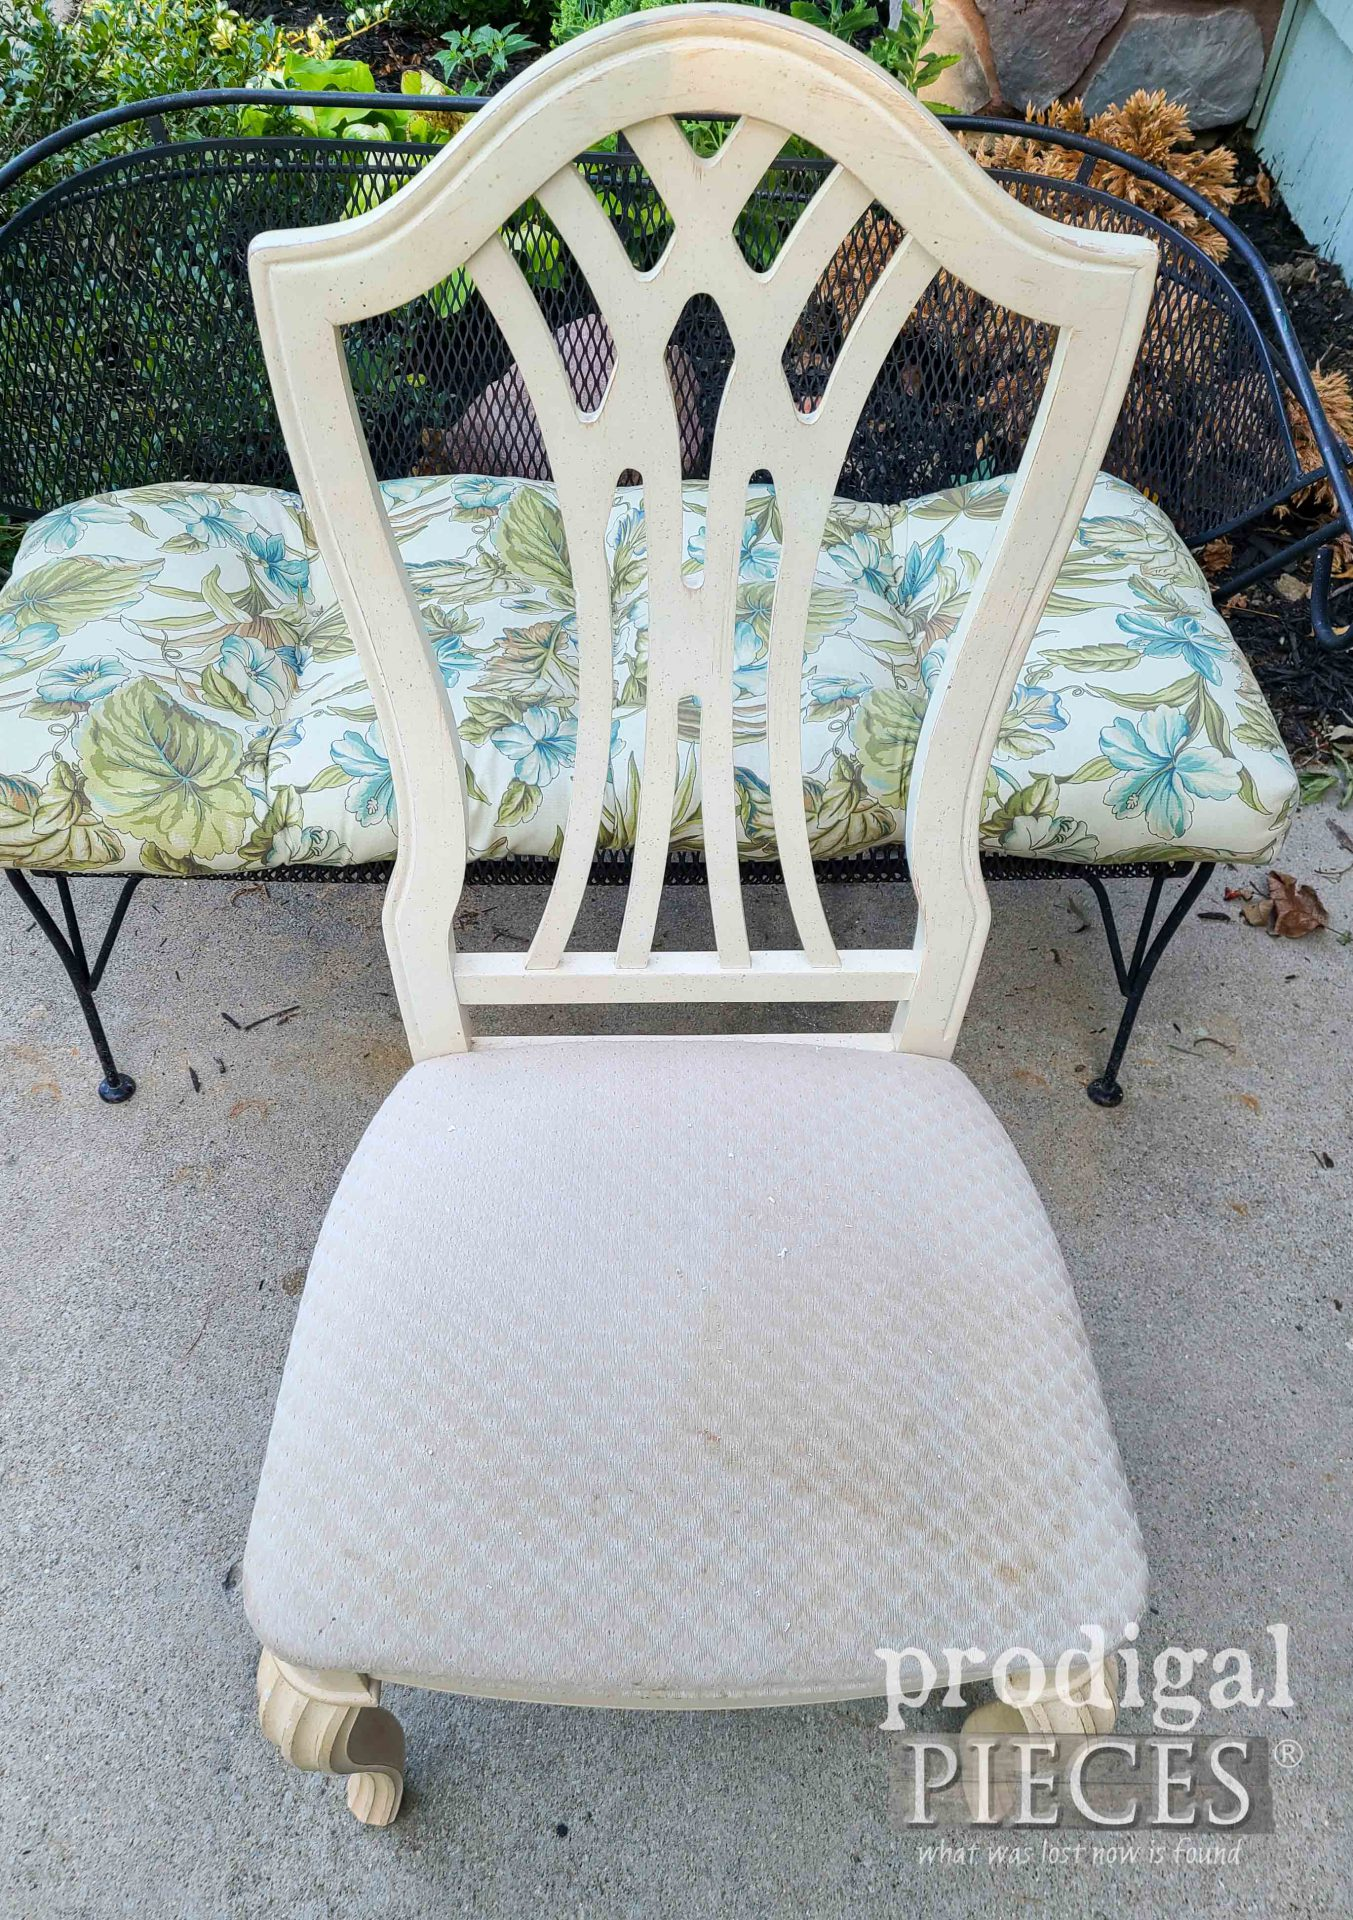 Curbside Chair Upholstery Before | Prodigal Pieces | prodigalpieces.com